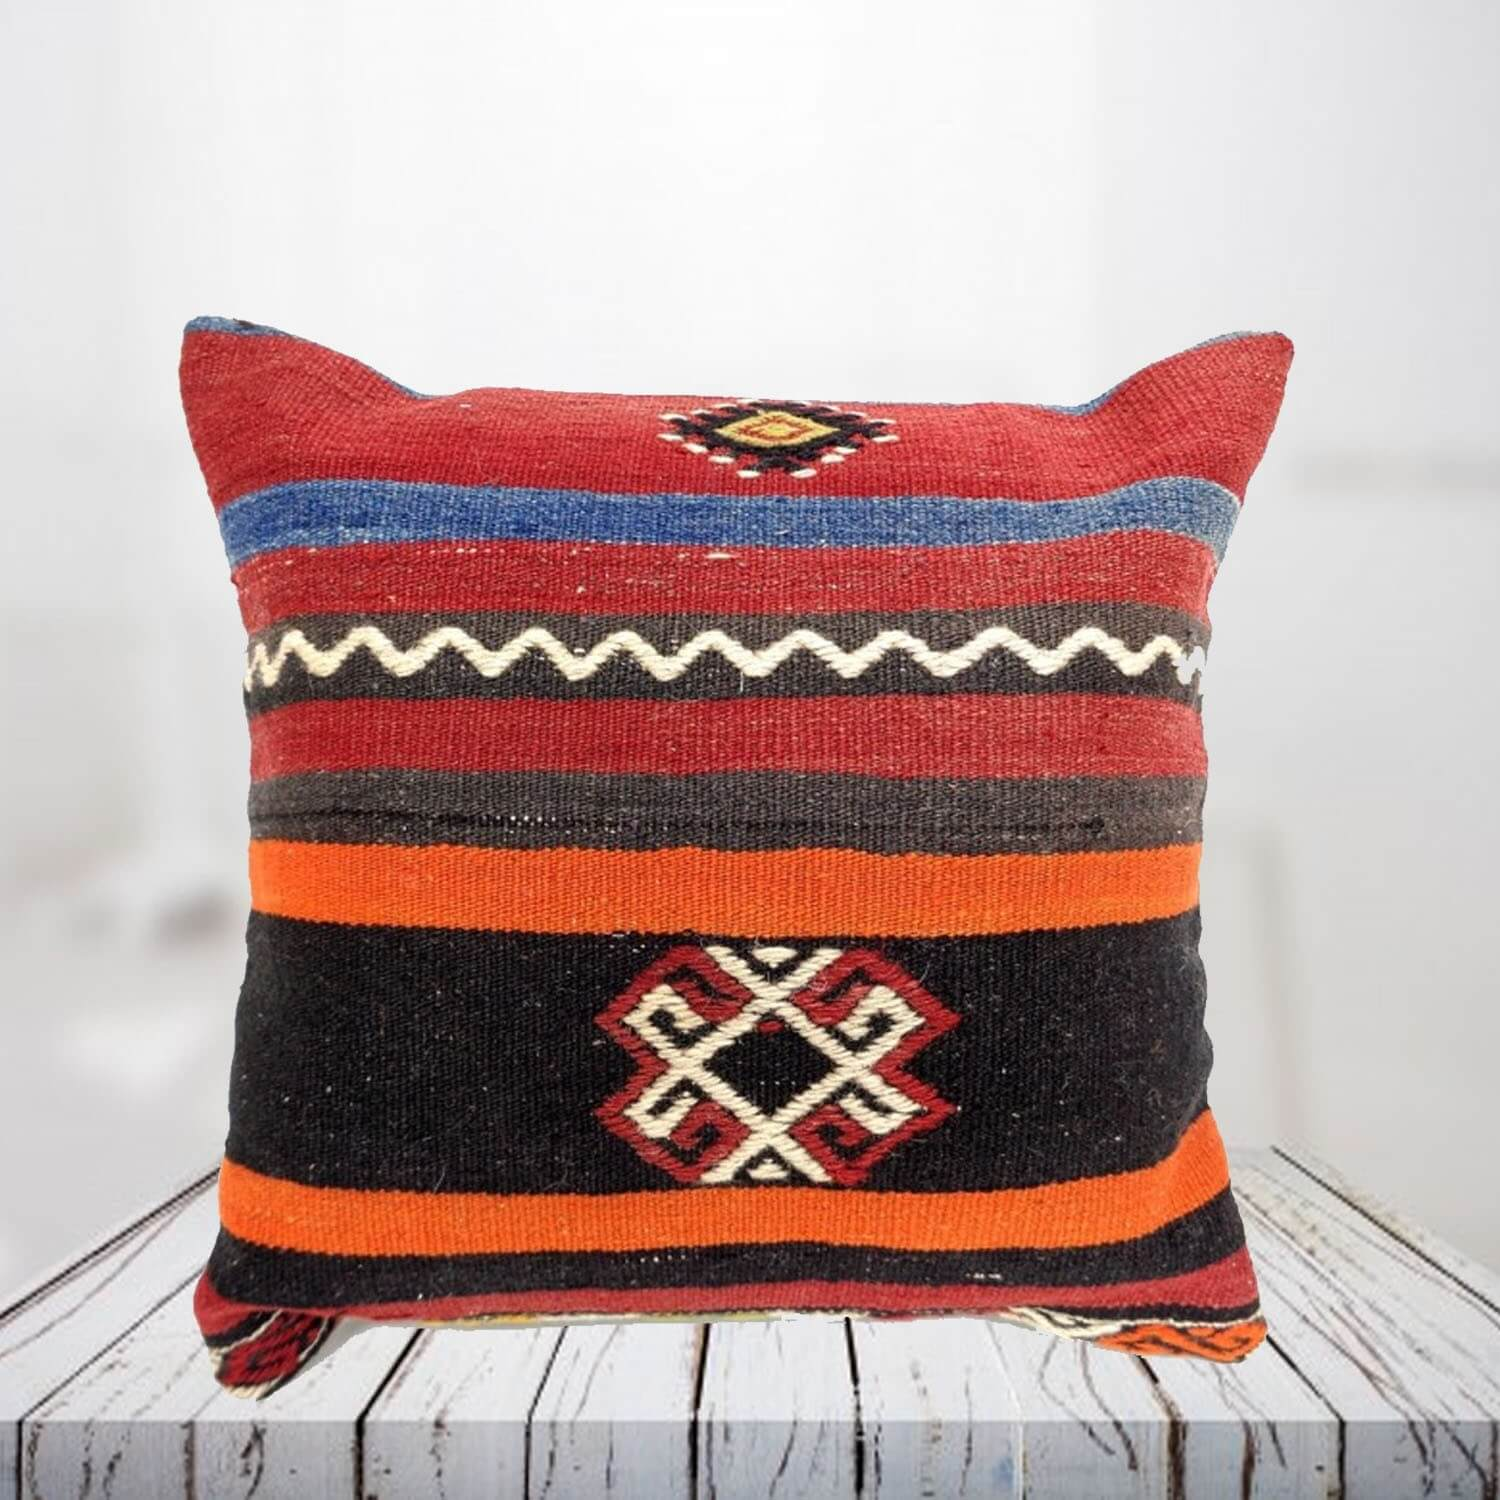 Handwoven Turkish kilim pillow case - SHI_PC19